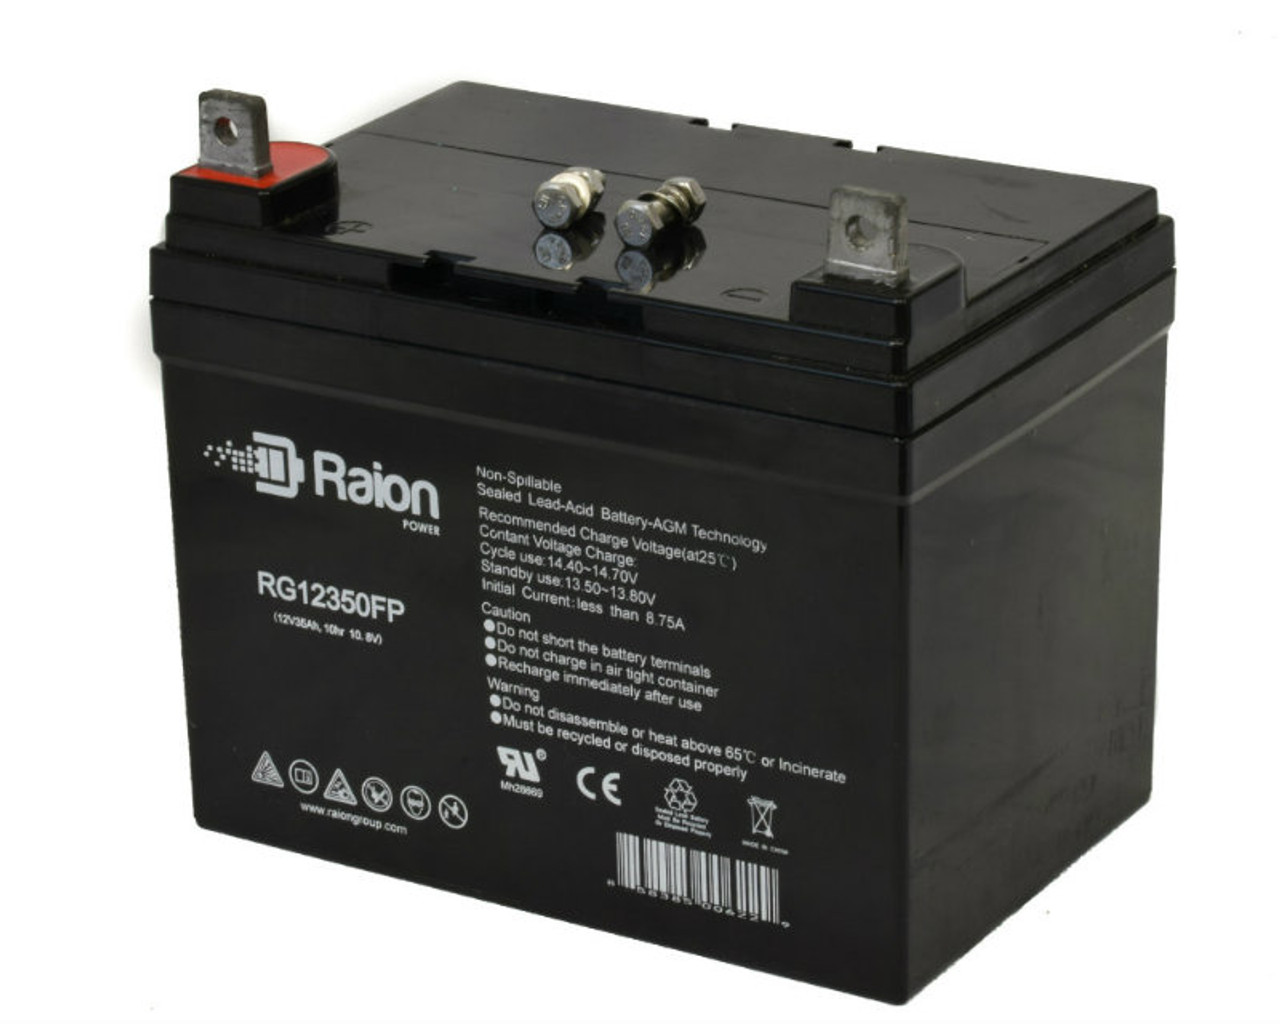 RG12350FP Sealed Lead Acid Battery Pack For Electric Mobility Ultralite 105 Mobility Scooter